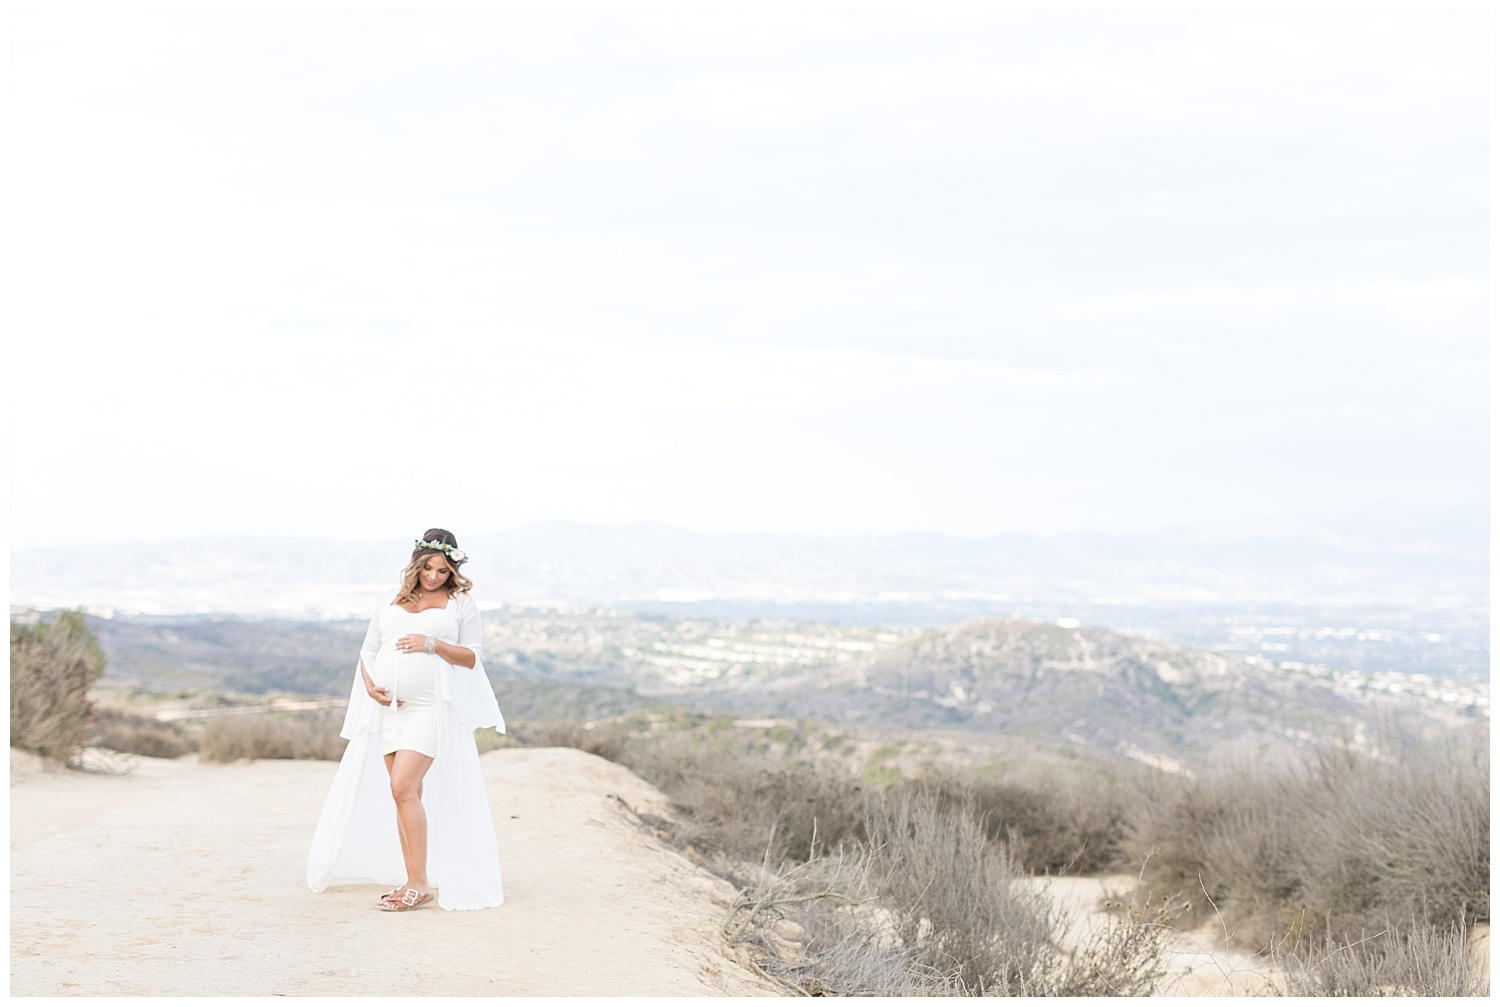 ashley - laguna beach, orange county hiking trail - maternity-0007